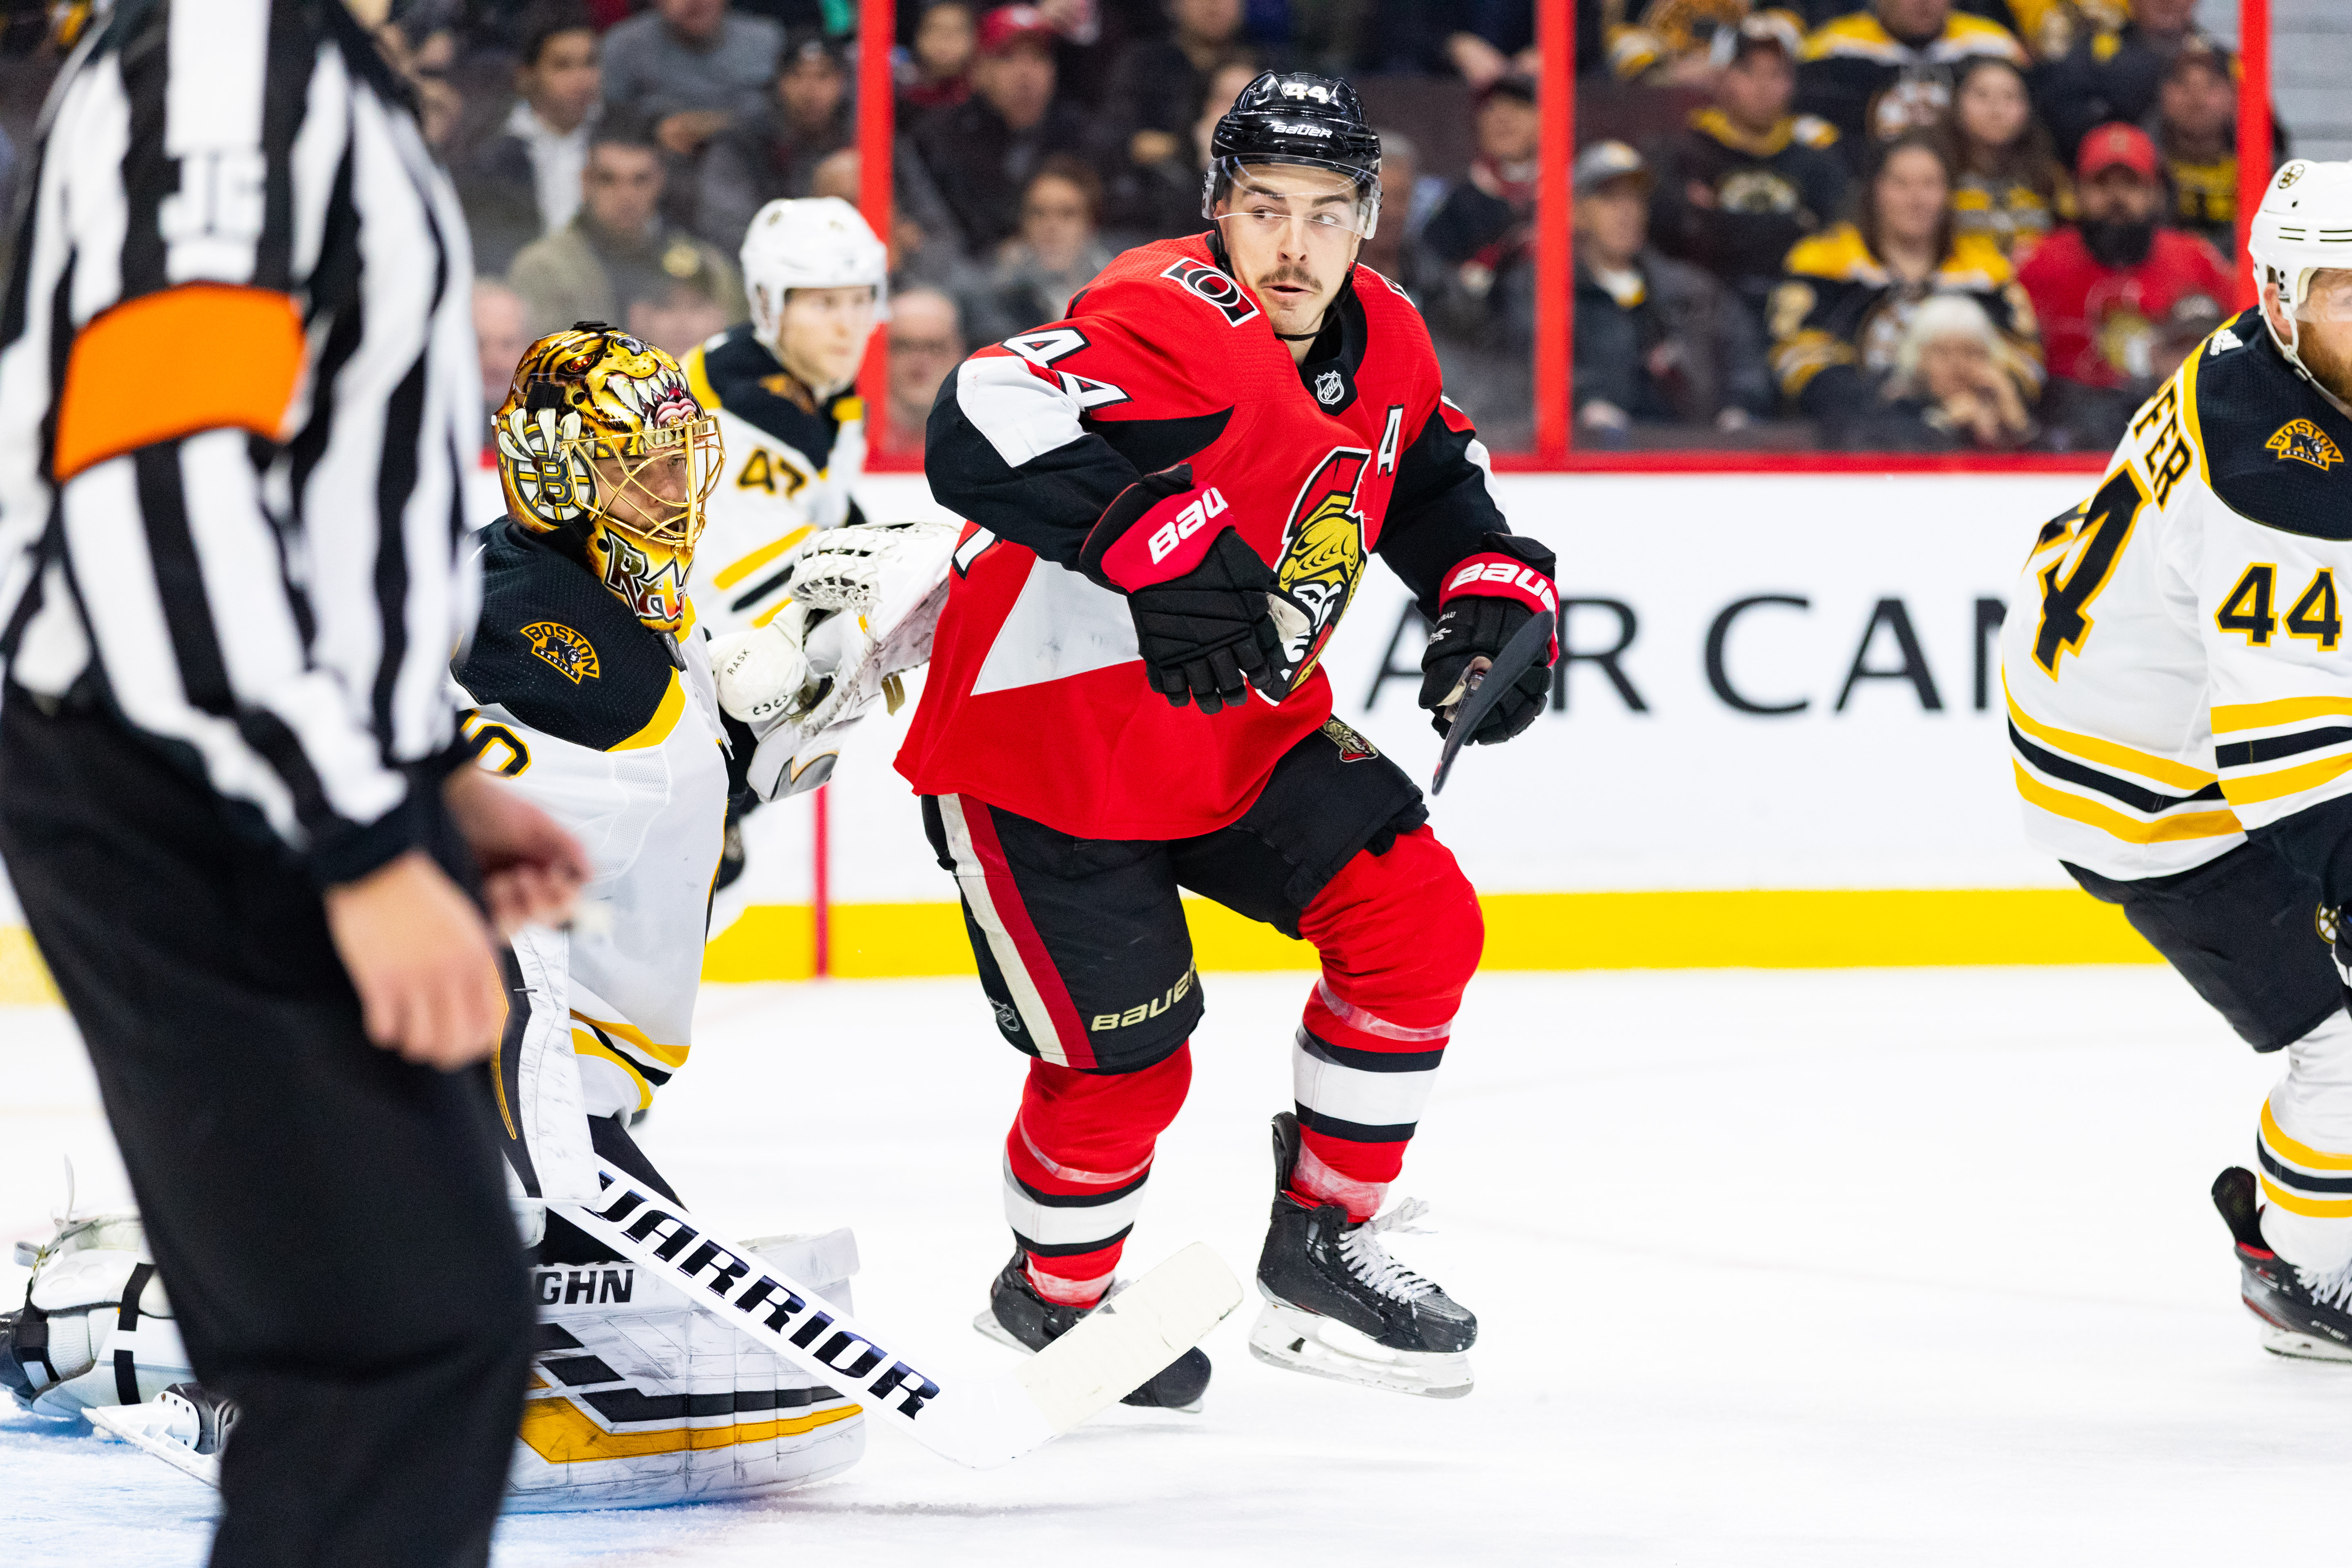 NHL: NOV 27 Bruins at Senators